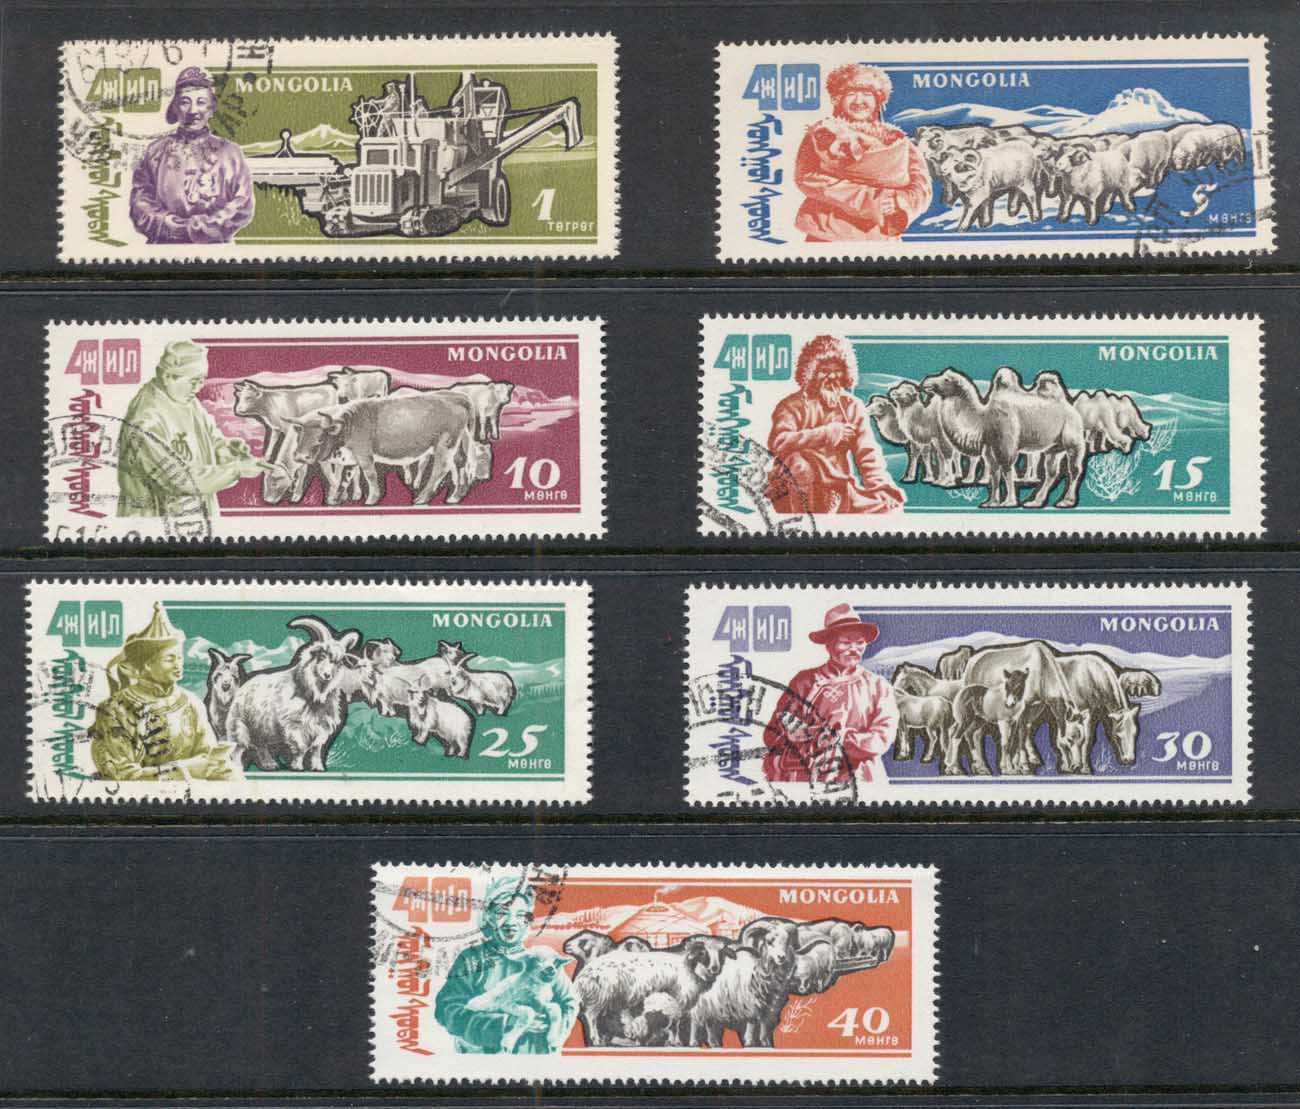 Mongolia 1961 Herdsmen & Domestic Animals CTO